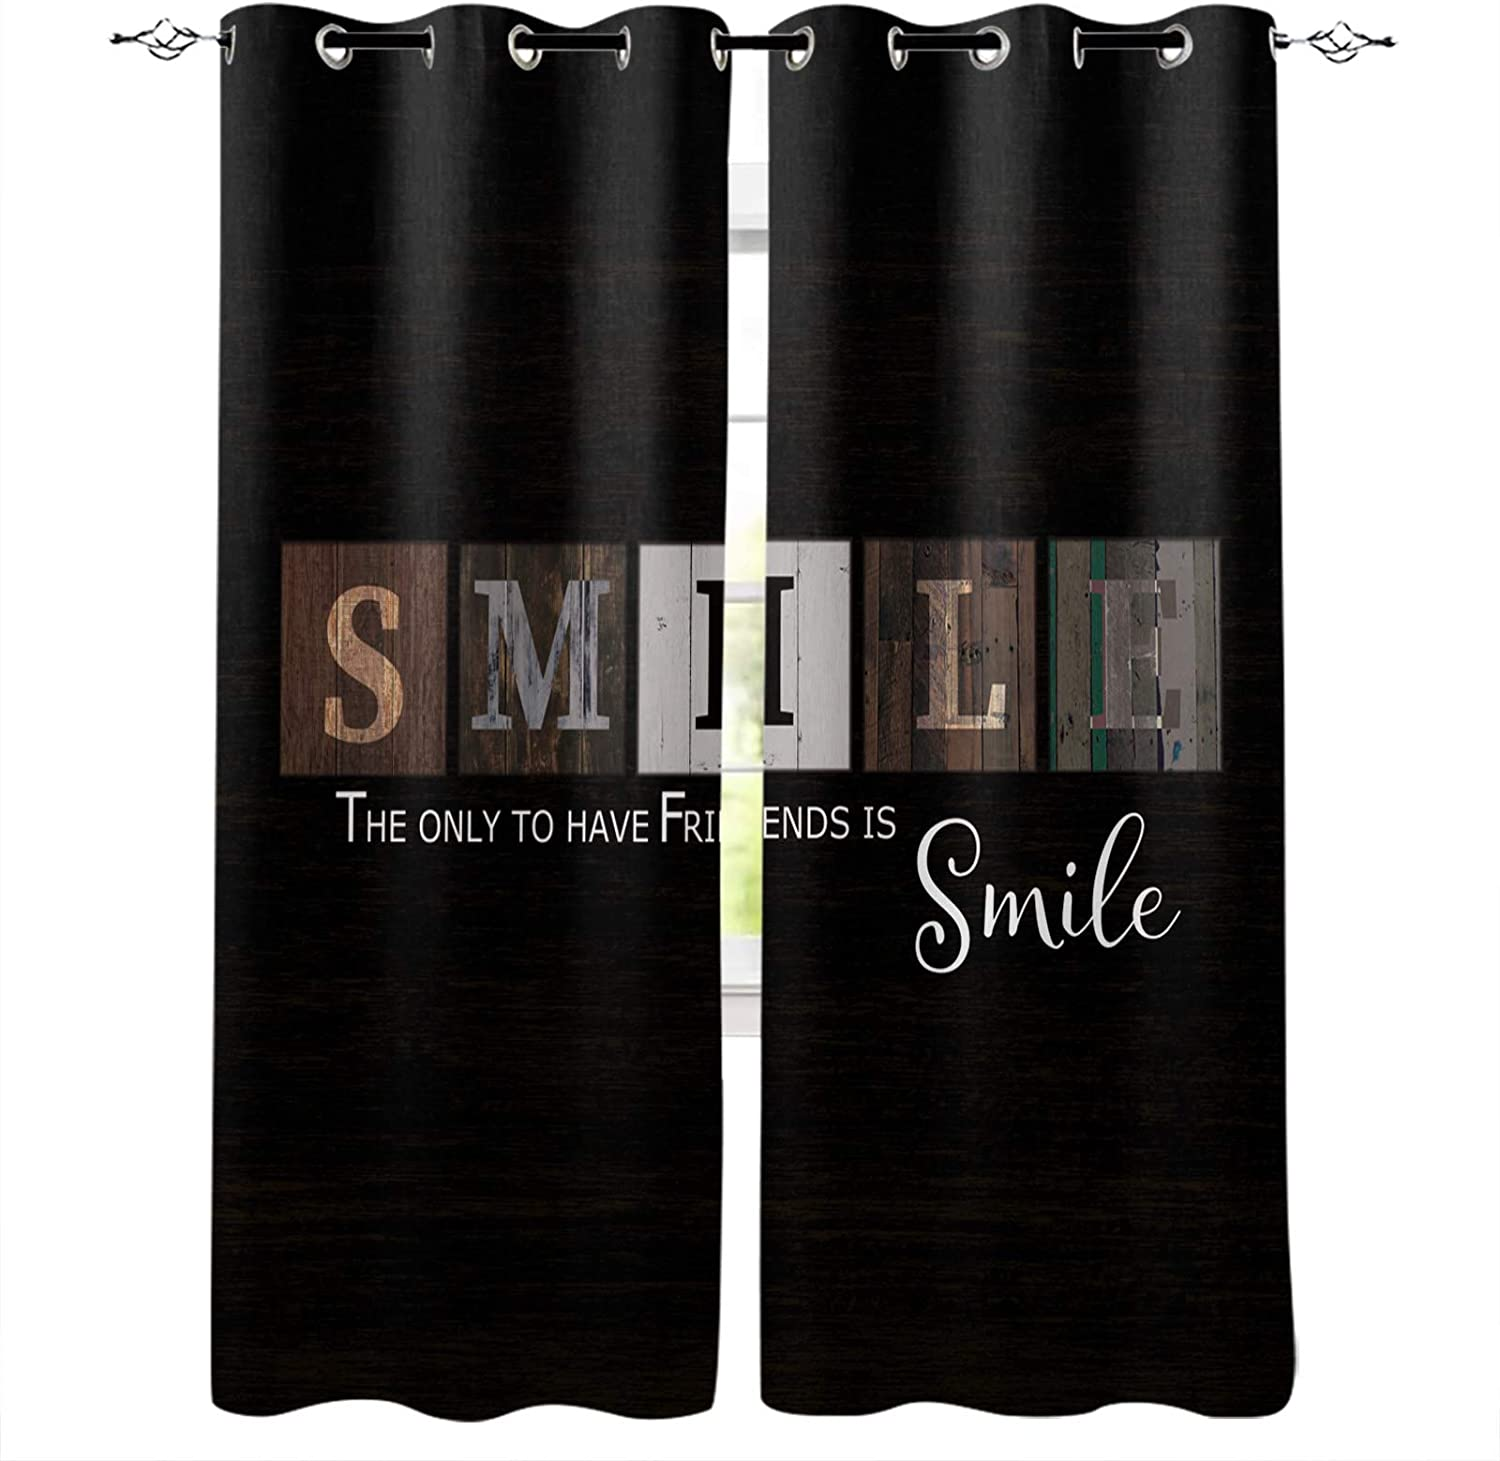 Blackout Curtains for Bedroom Rustic Phoenix Mall Beauty products Wooden Room Smile Darkenin